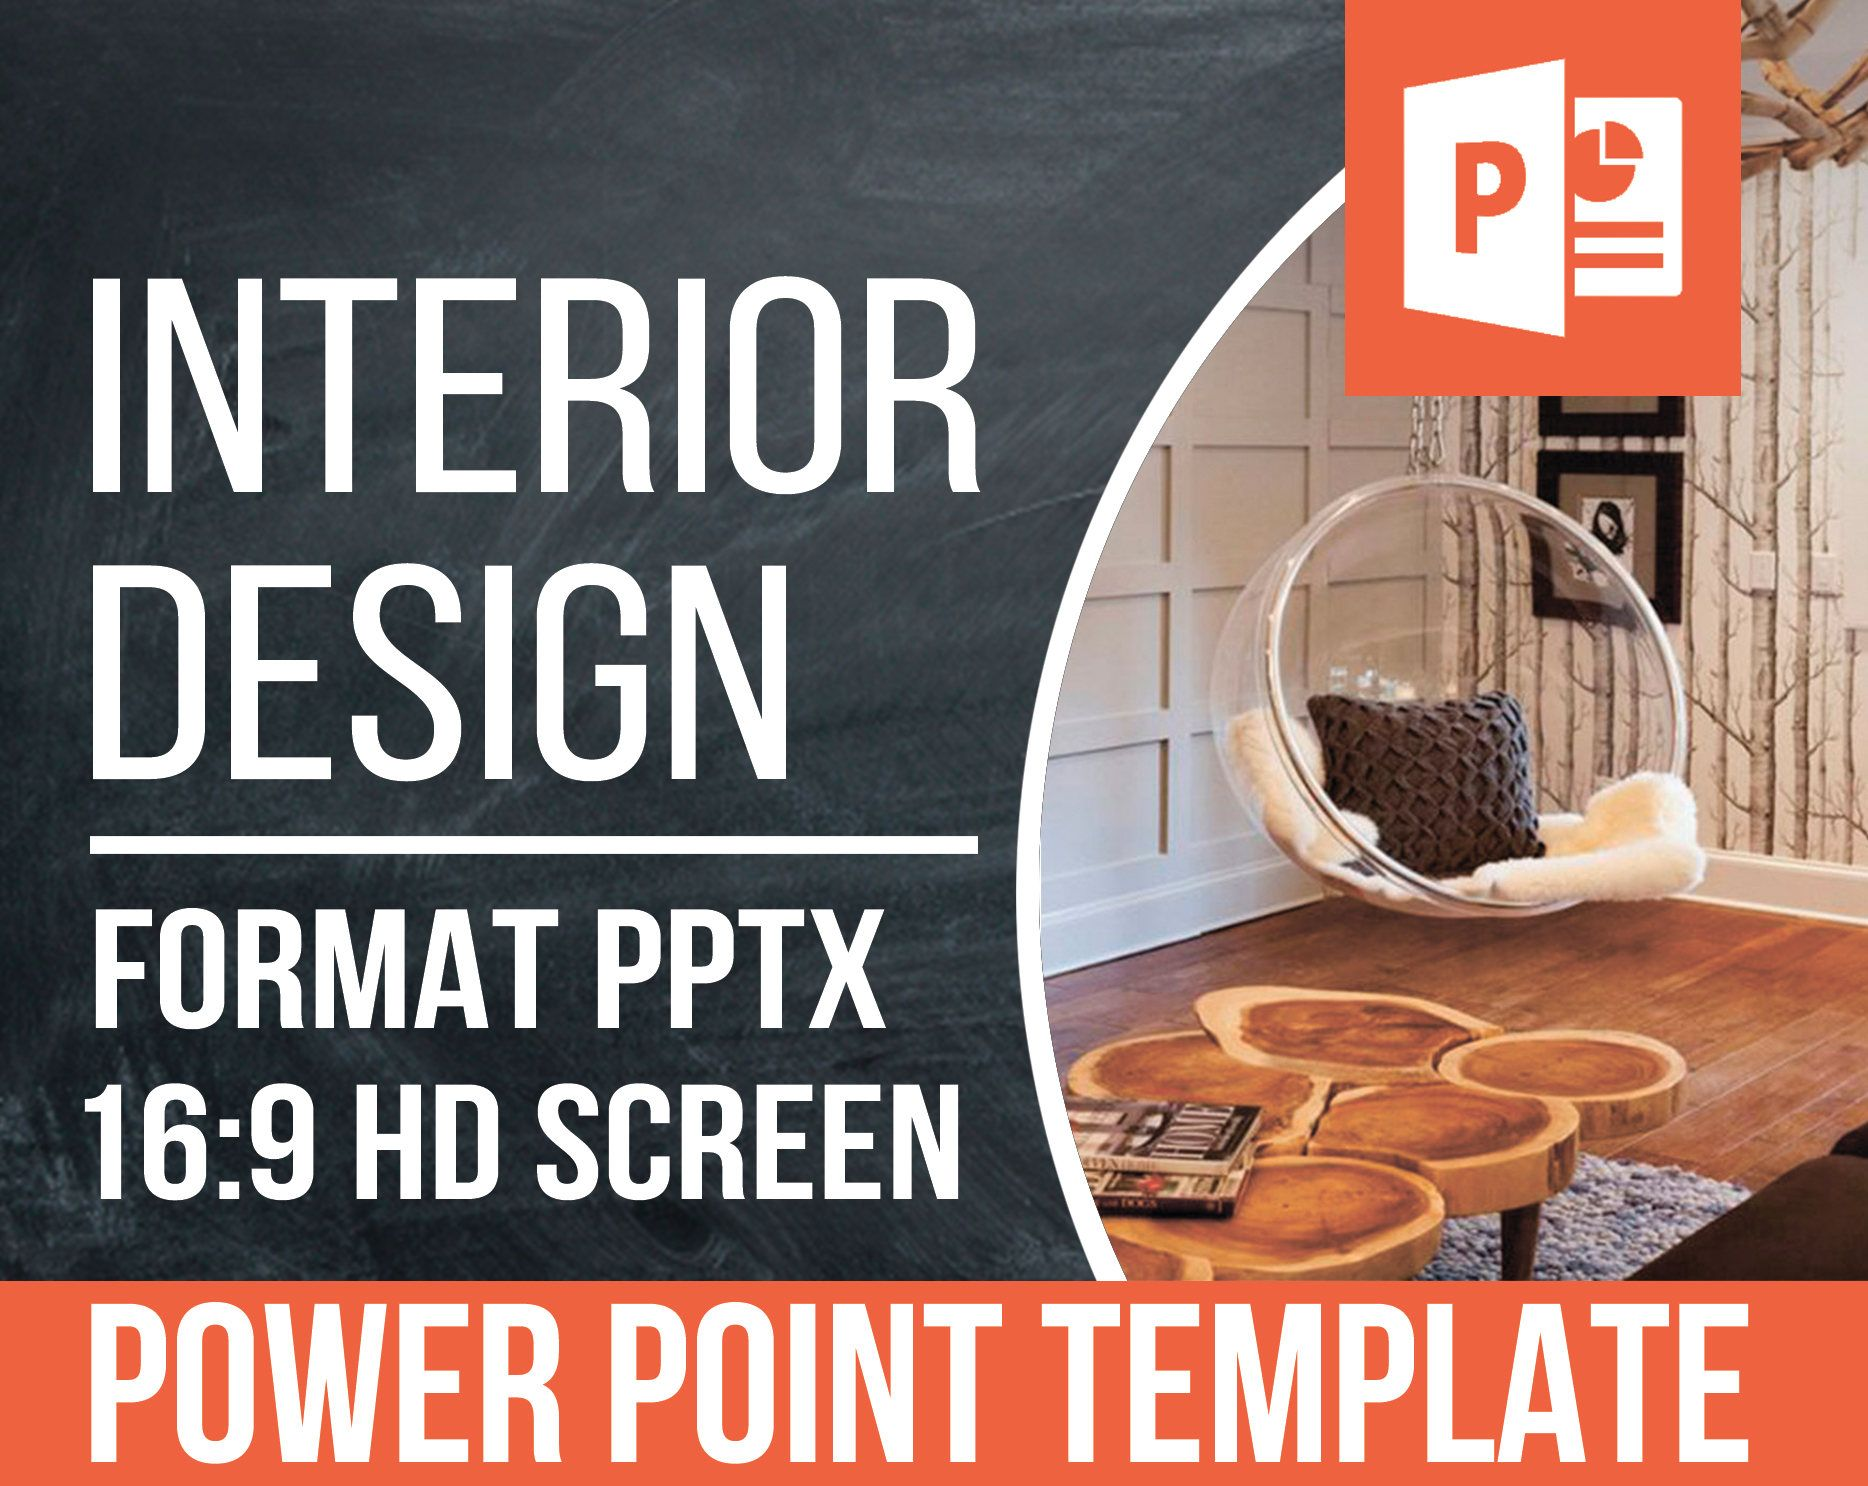 Interior design powerpoint presentation template httpetsy interior design powerpoint presentation template httpetsy2imx2o9 toneelgroepblik Image collections